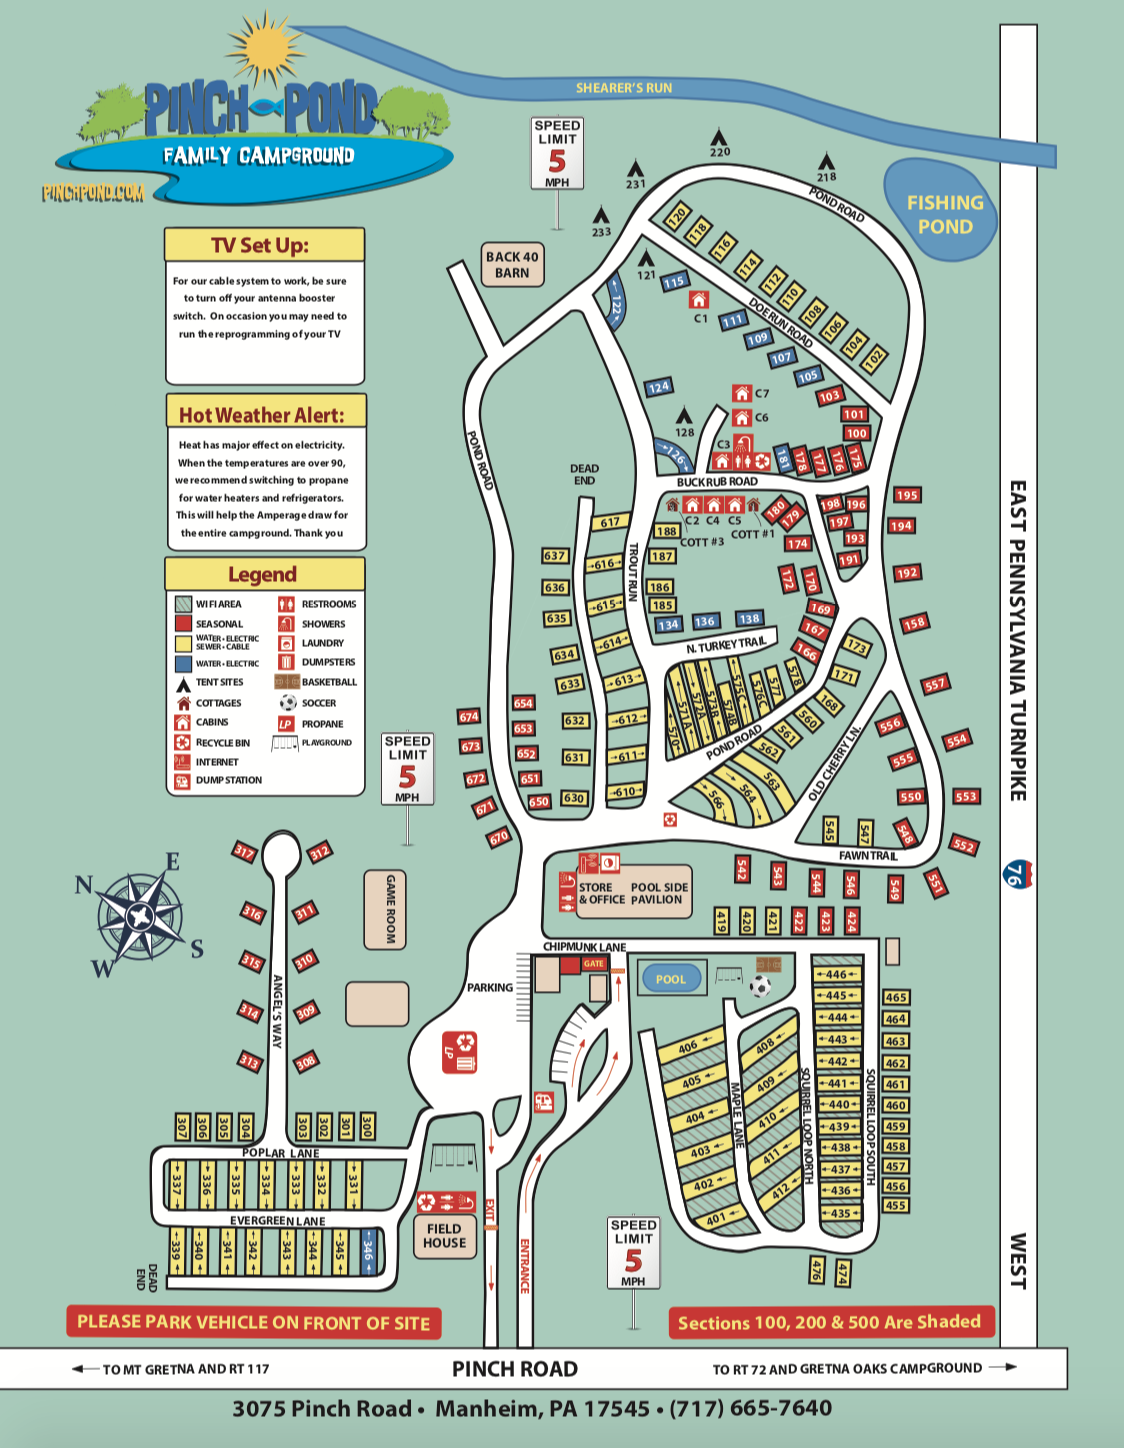 campground map for pinch pond campground